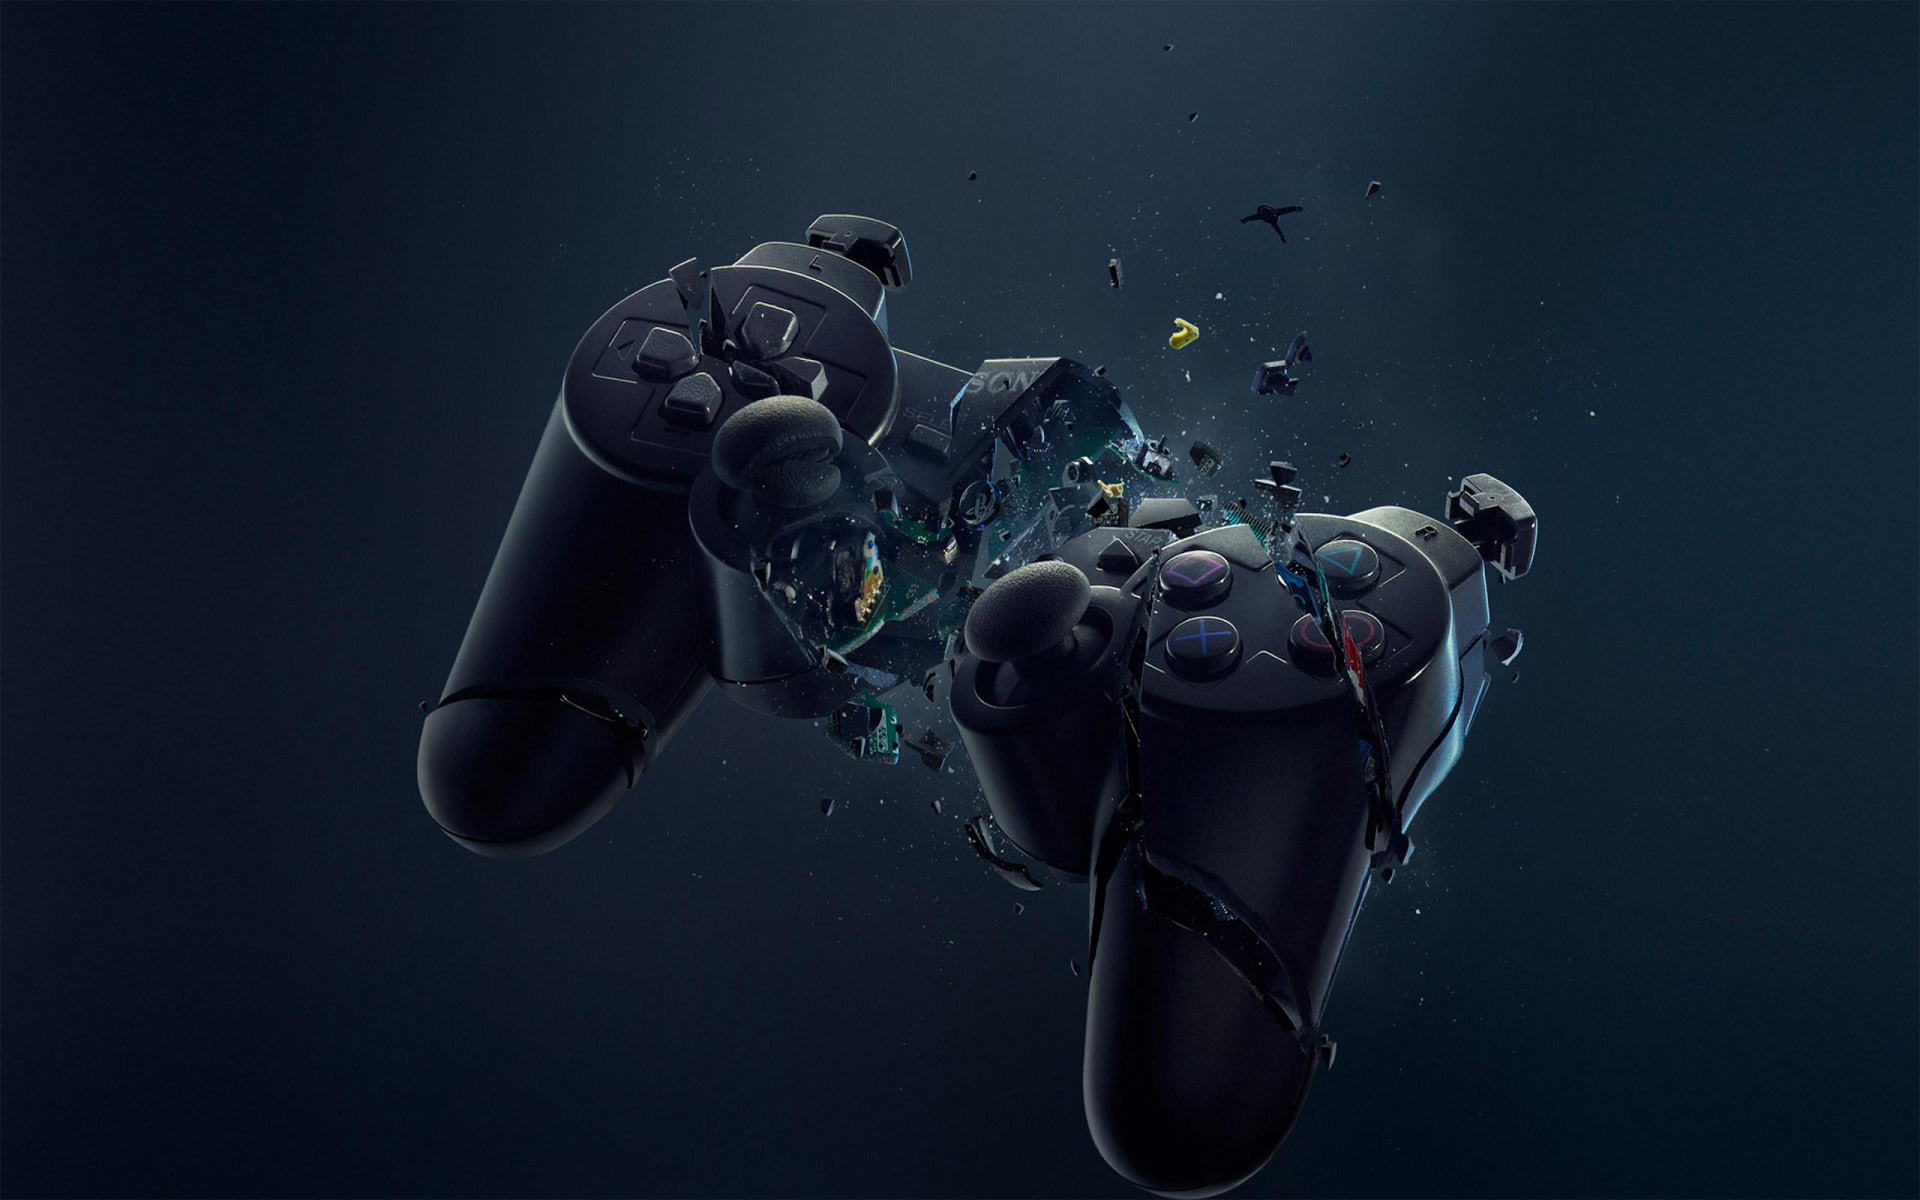 Broken Xbox Controller HD Wallpaper